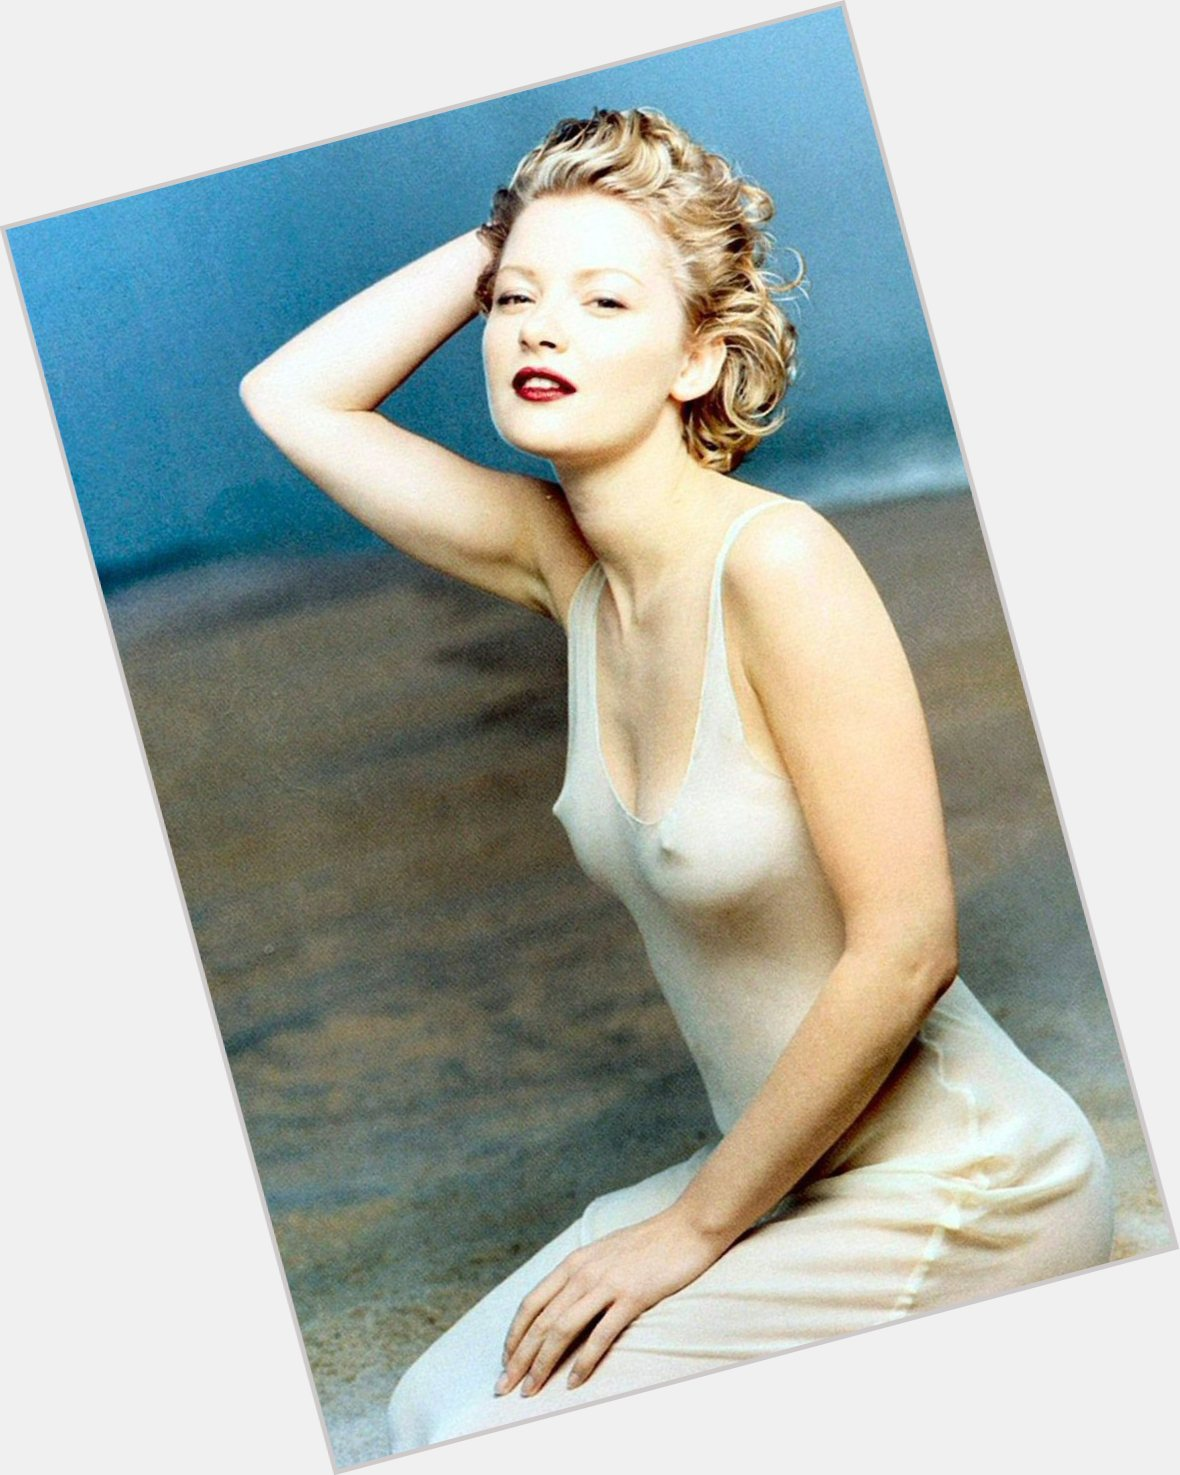 gretchen mol chancegretchen mol chance, gretchen mol filmography, gretchen mol hugh laurie, gretchen mol, gretchen mol imdb, gretchen mol films, gretchen mol harvey weinstein, gretchen mol instagram, gretchen mol dailymotion, gretchen mol husband, gretchen mol ancensored